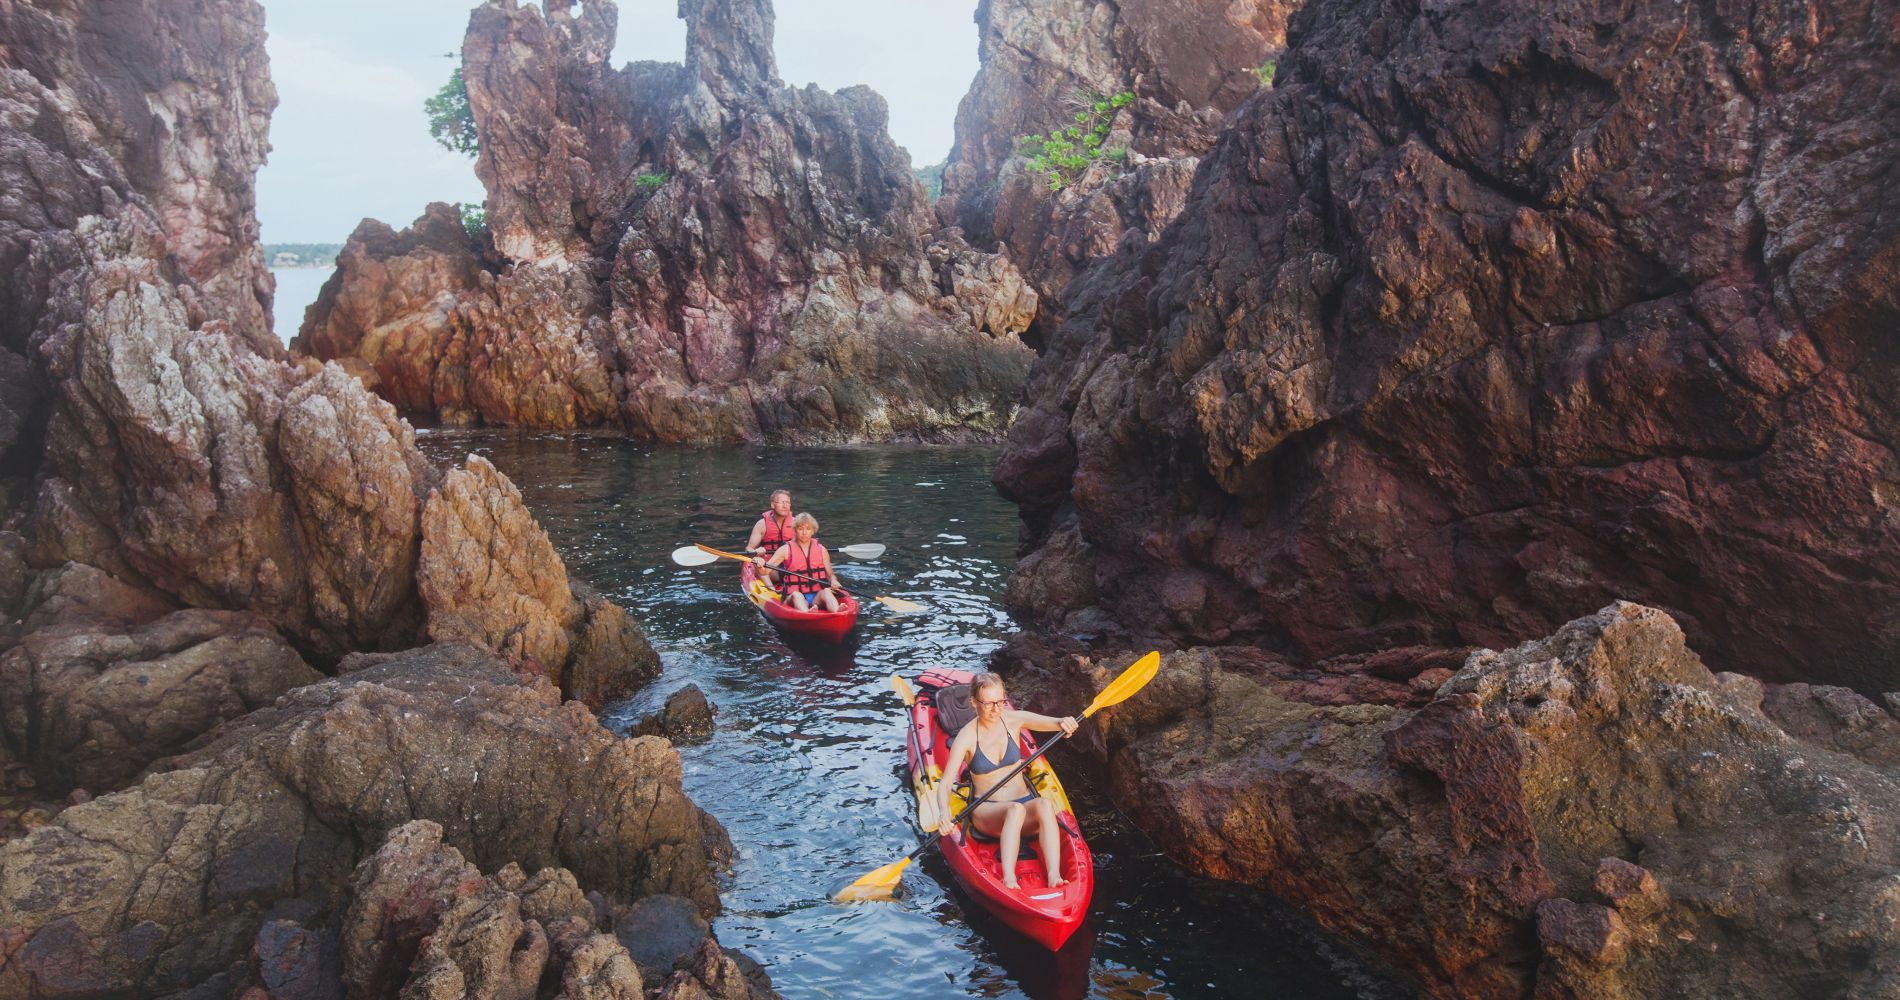 Costa Brava Kayaking and Snorkeling Experience from Barcelona